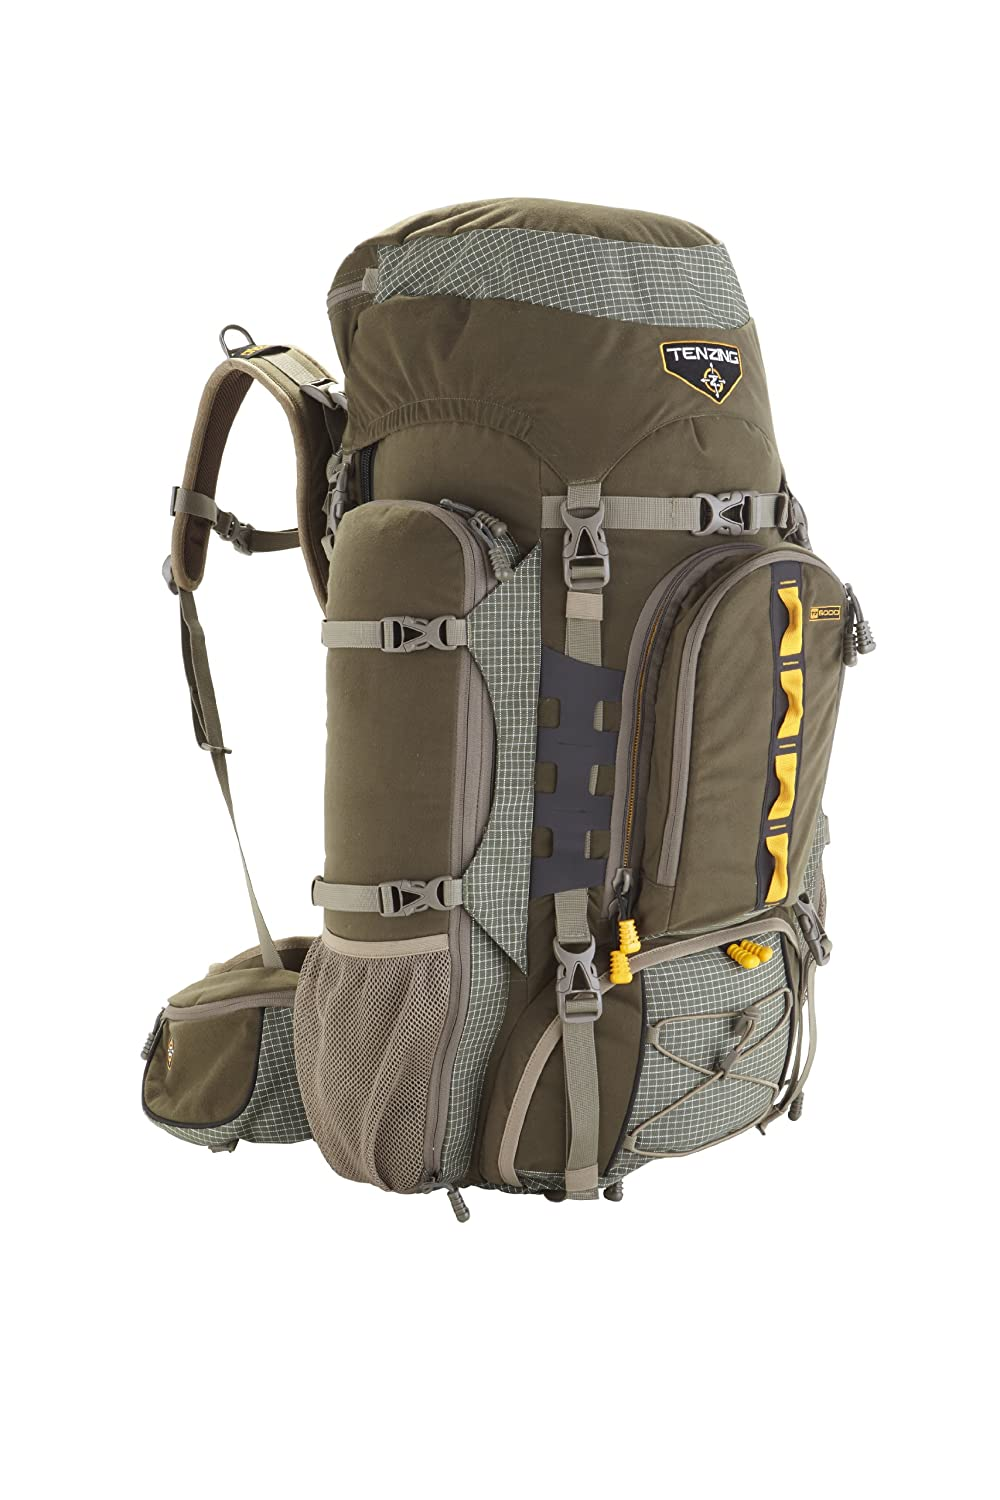 Amazon.com: Tenzing TZ 6000 Internal Frame Hunting Pack, Loden Green ...